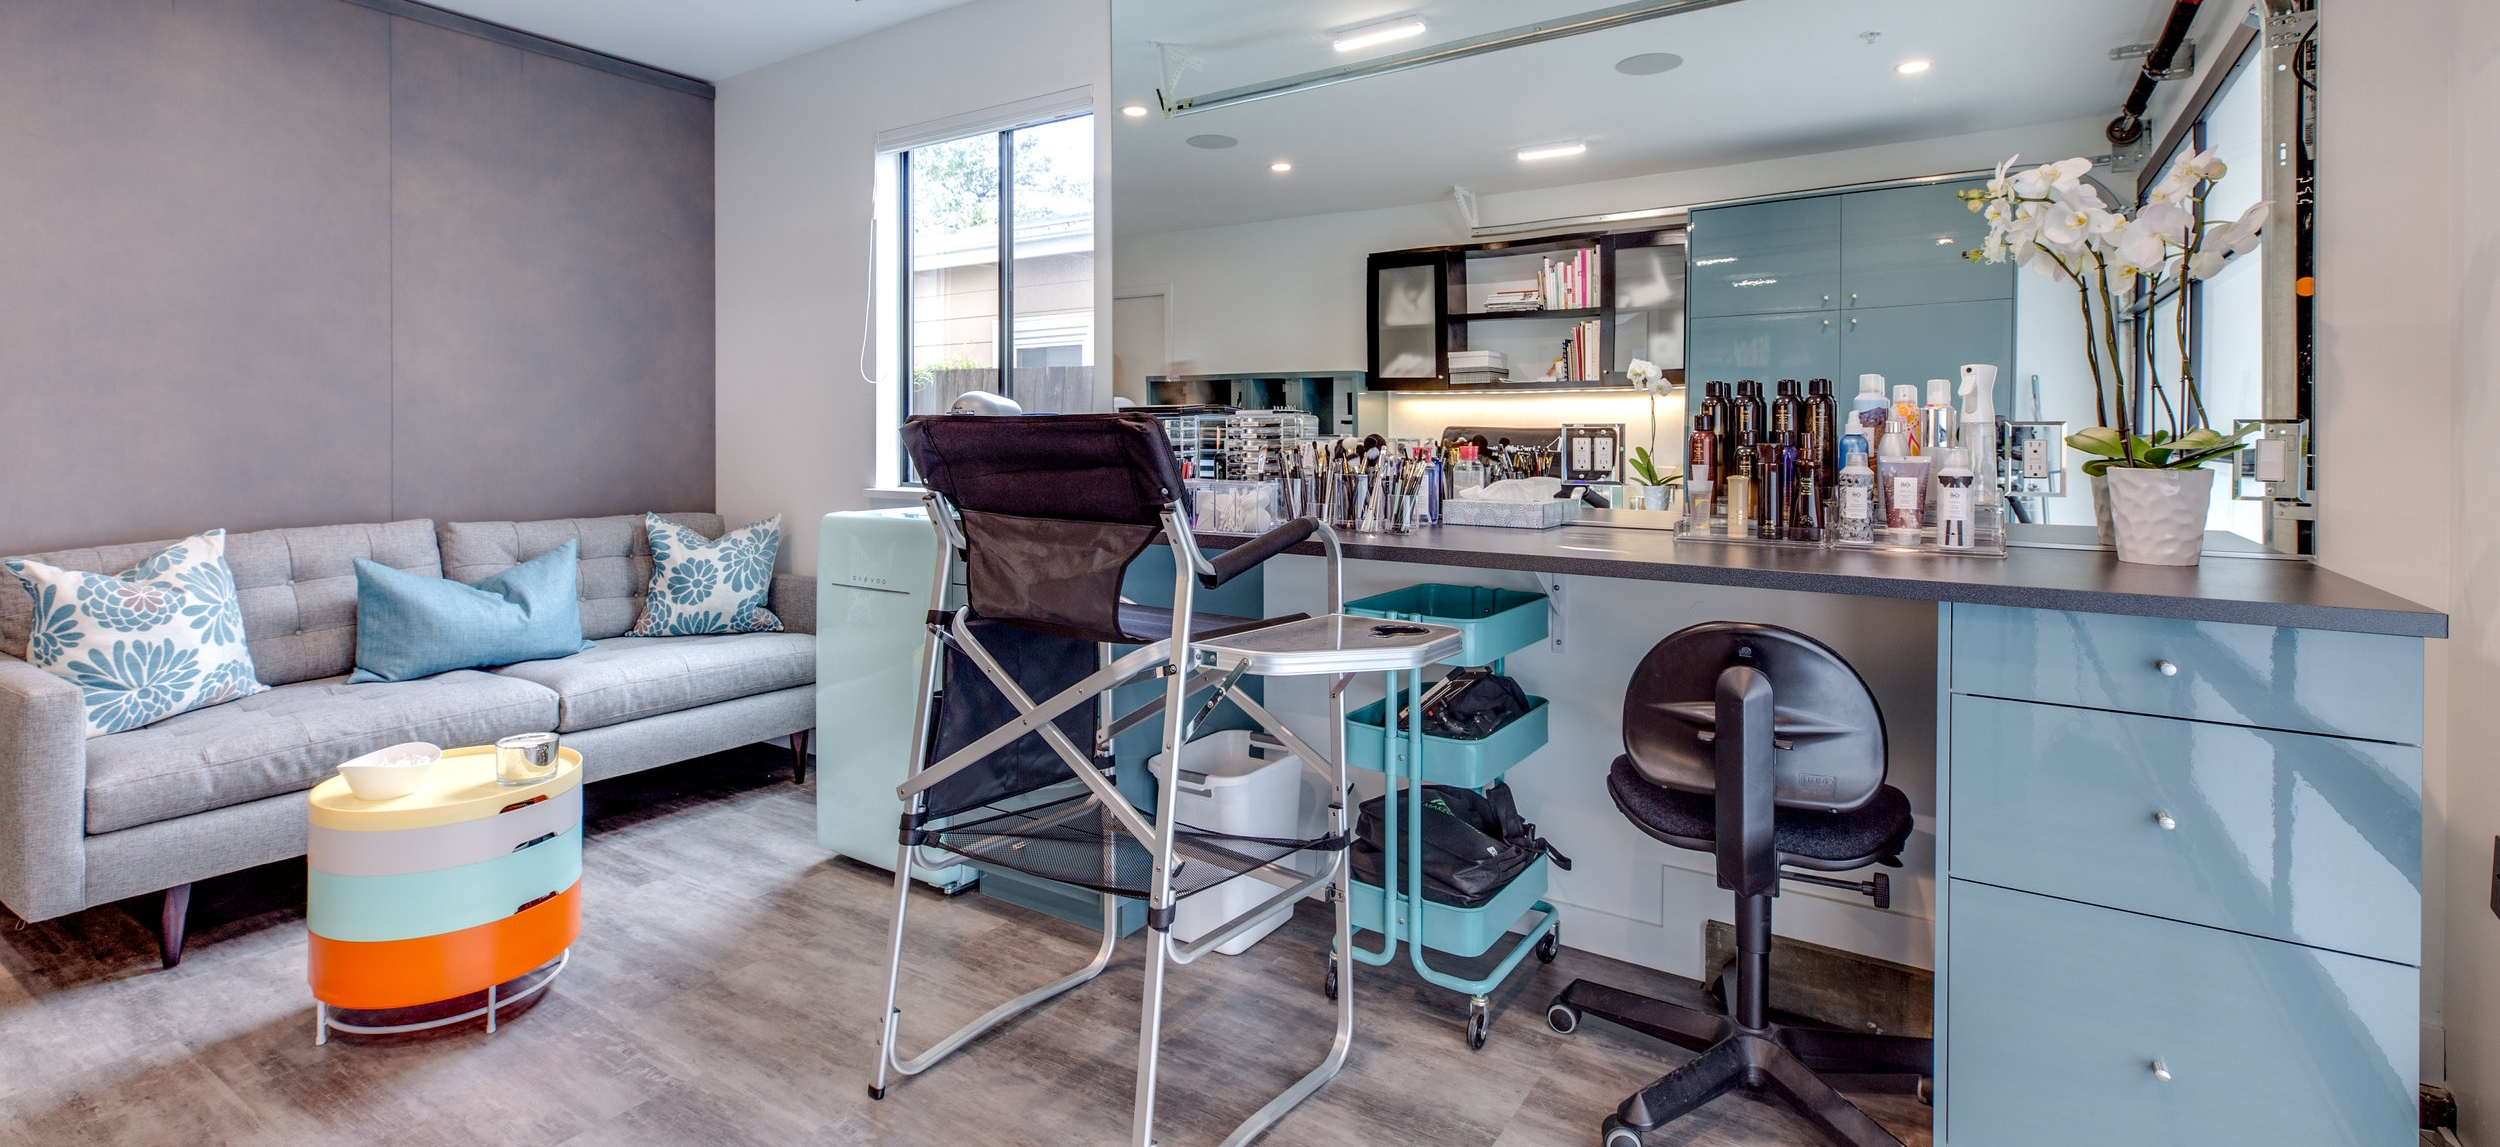 Marin-County-Makeup-Studio.jpg